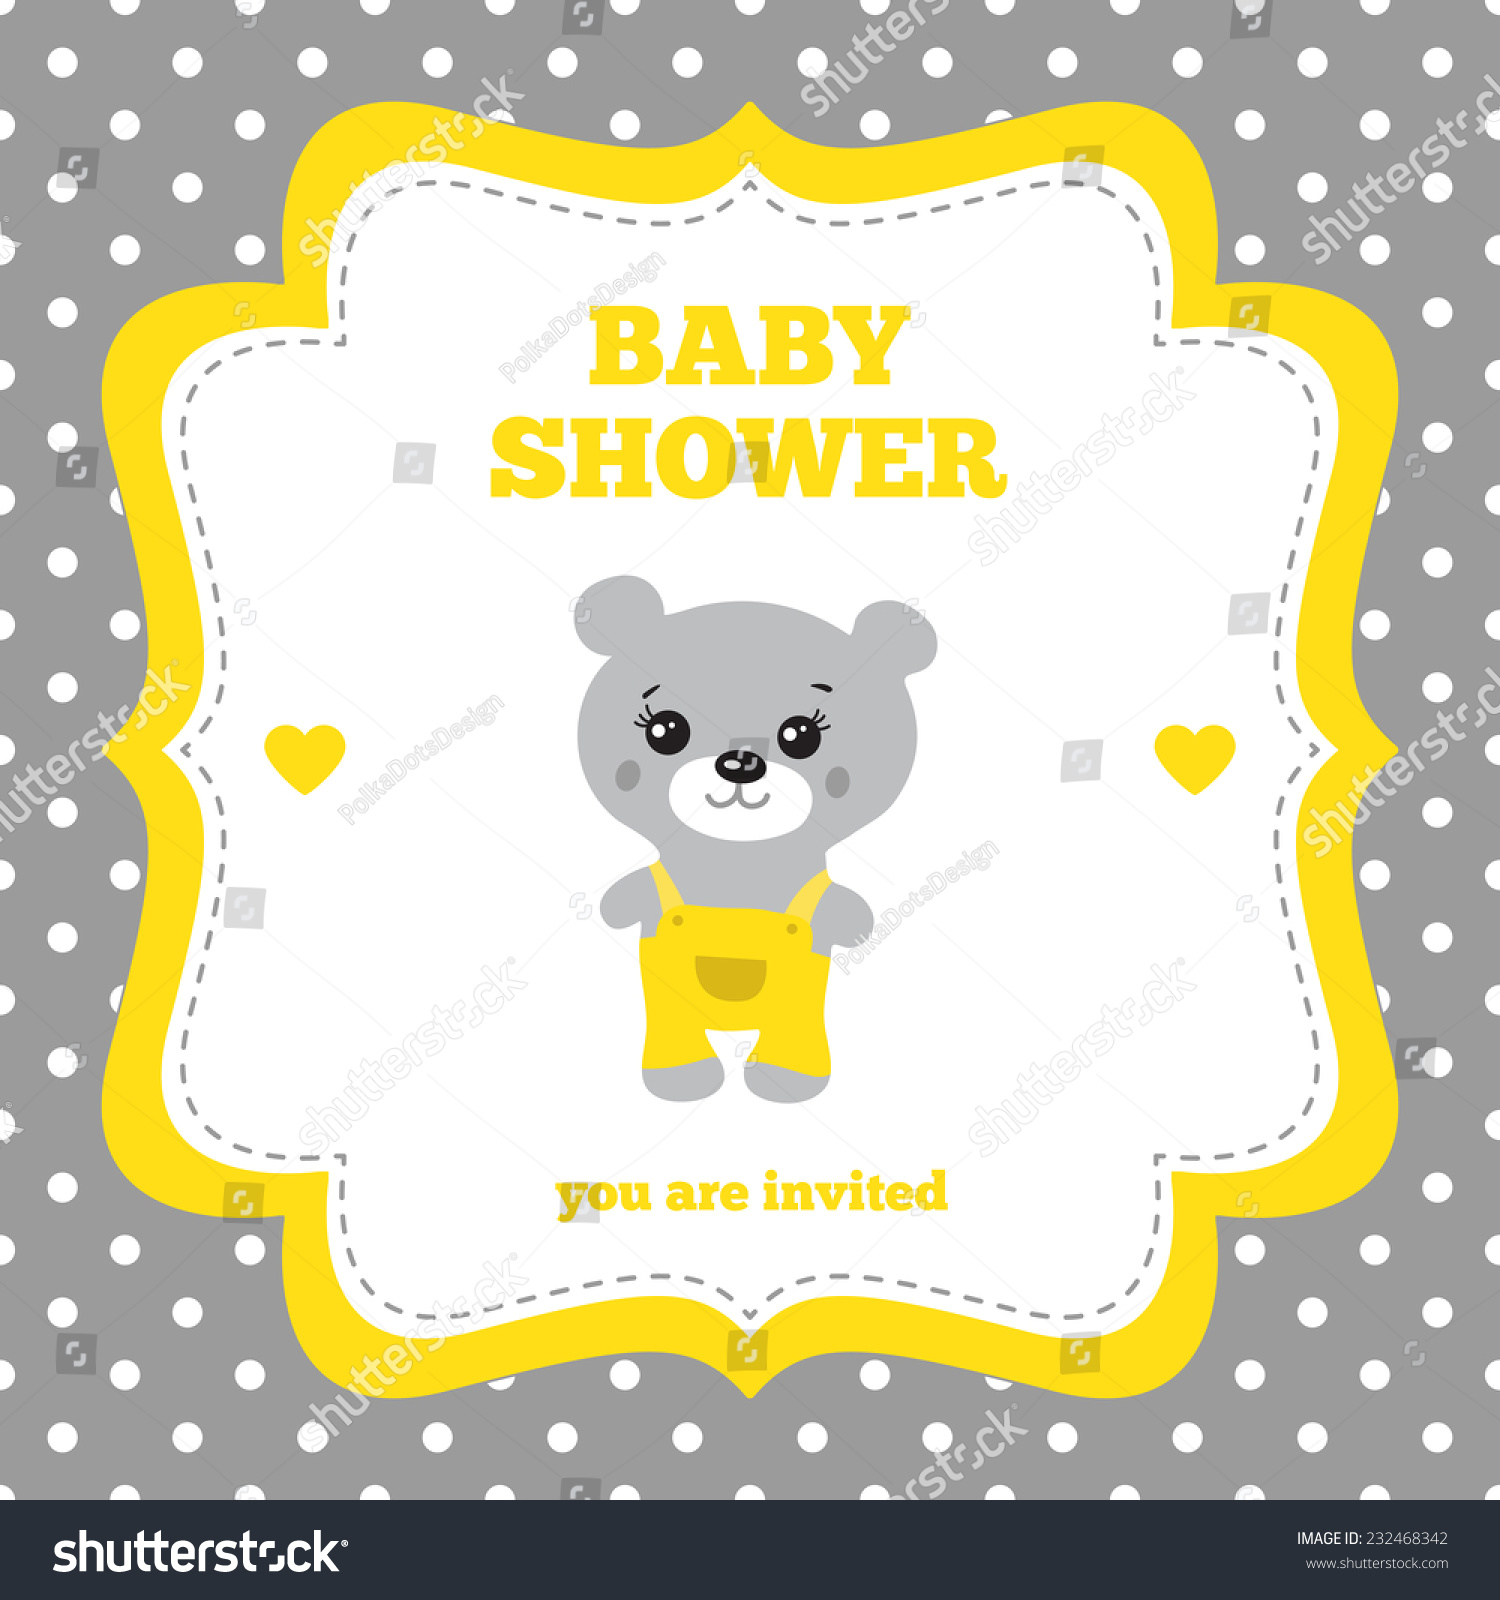 baby shower invitation template gray yellow stock vector, Baby shower